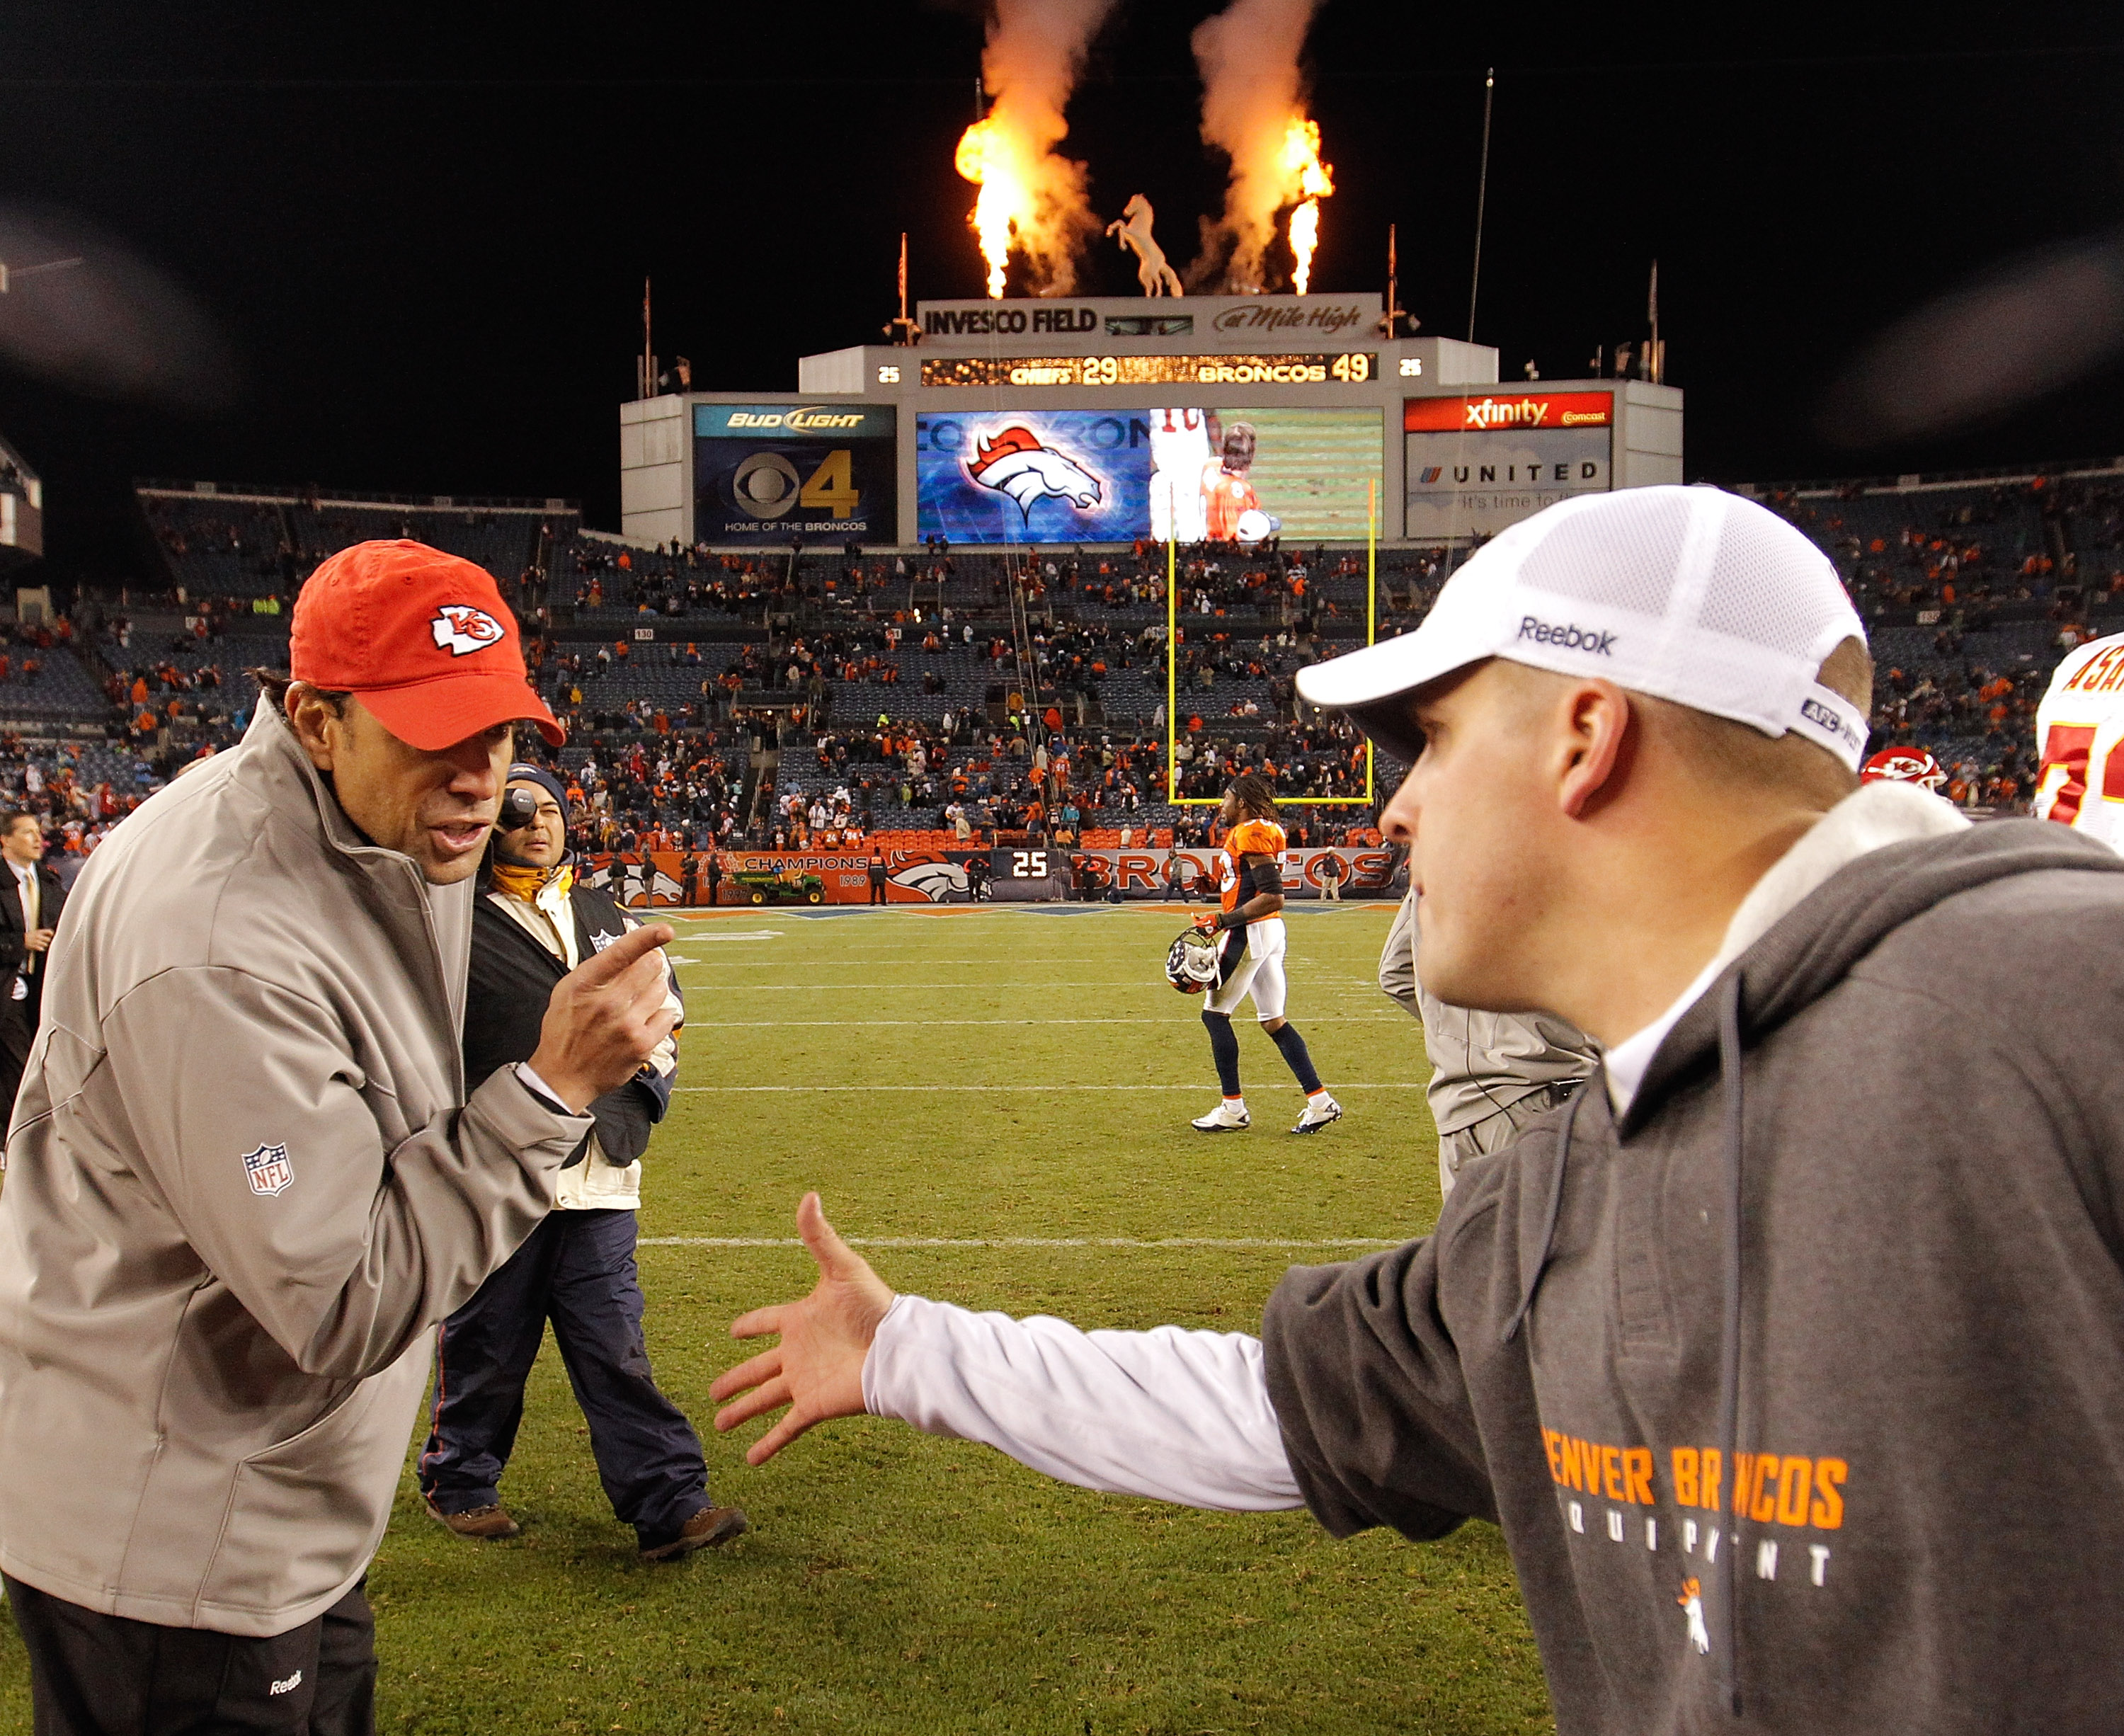 DENVER - NOVEMBER 14:  Head coach Todd Haley of the Kansas City Chiefs has some unwelcome words with head coach Josh McDaniels of the Denver Broncos as he refuses to shake his hand after the Broncos 49-29 win at INVESCO Field at Mile High on November 14,